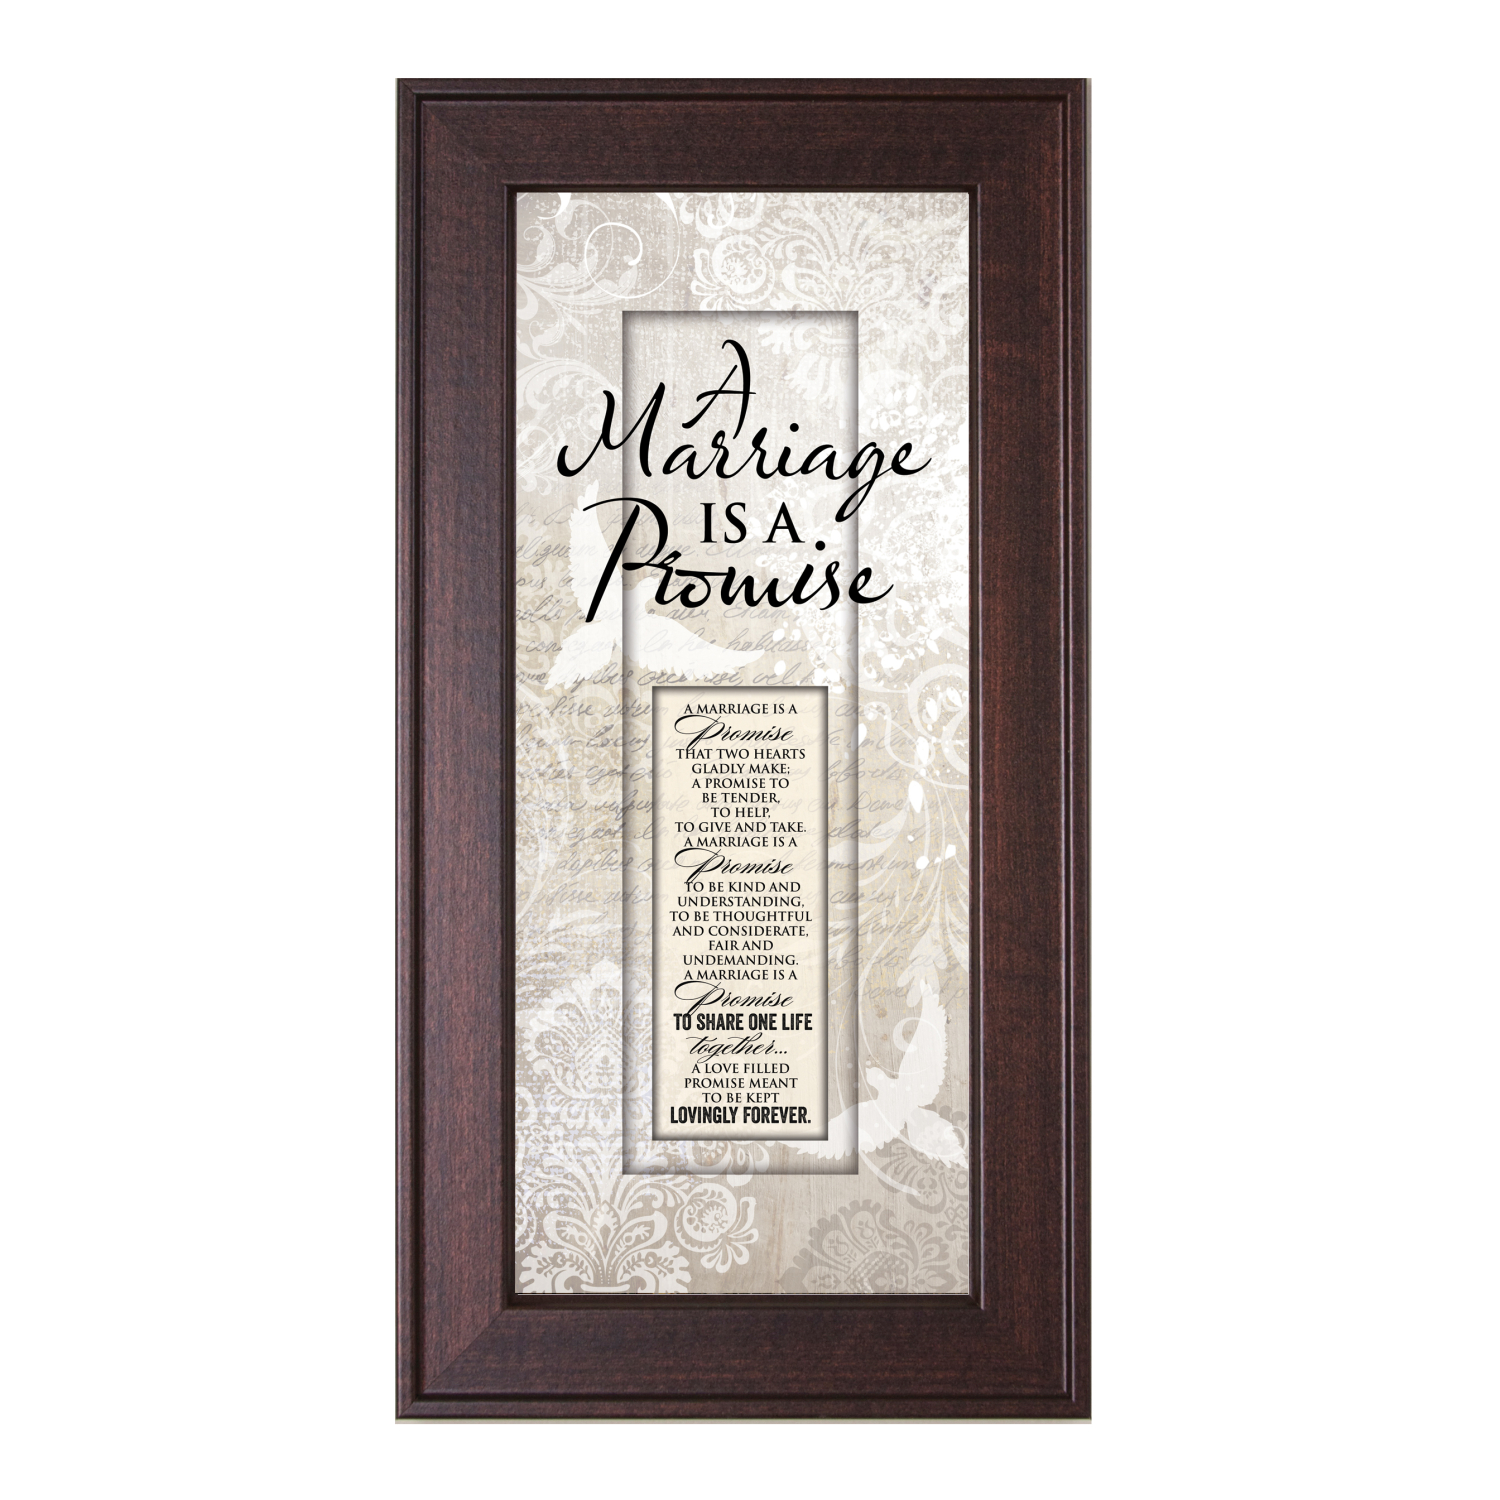 Marriage Promise Framed Wall Art